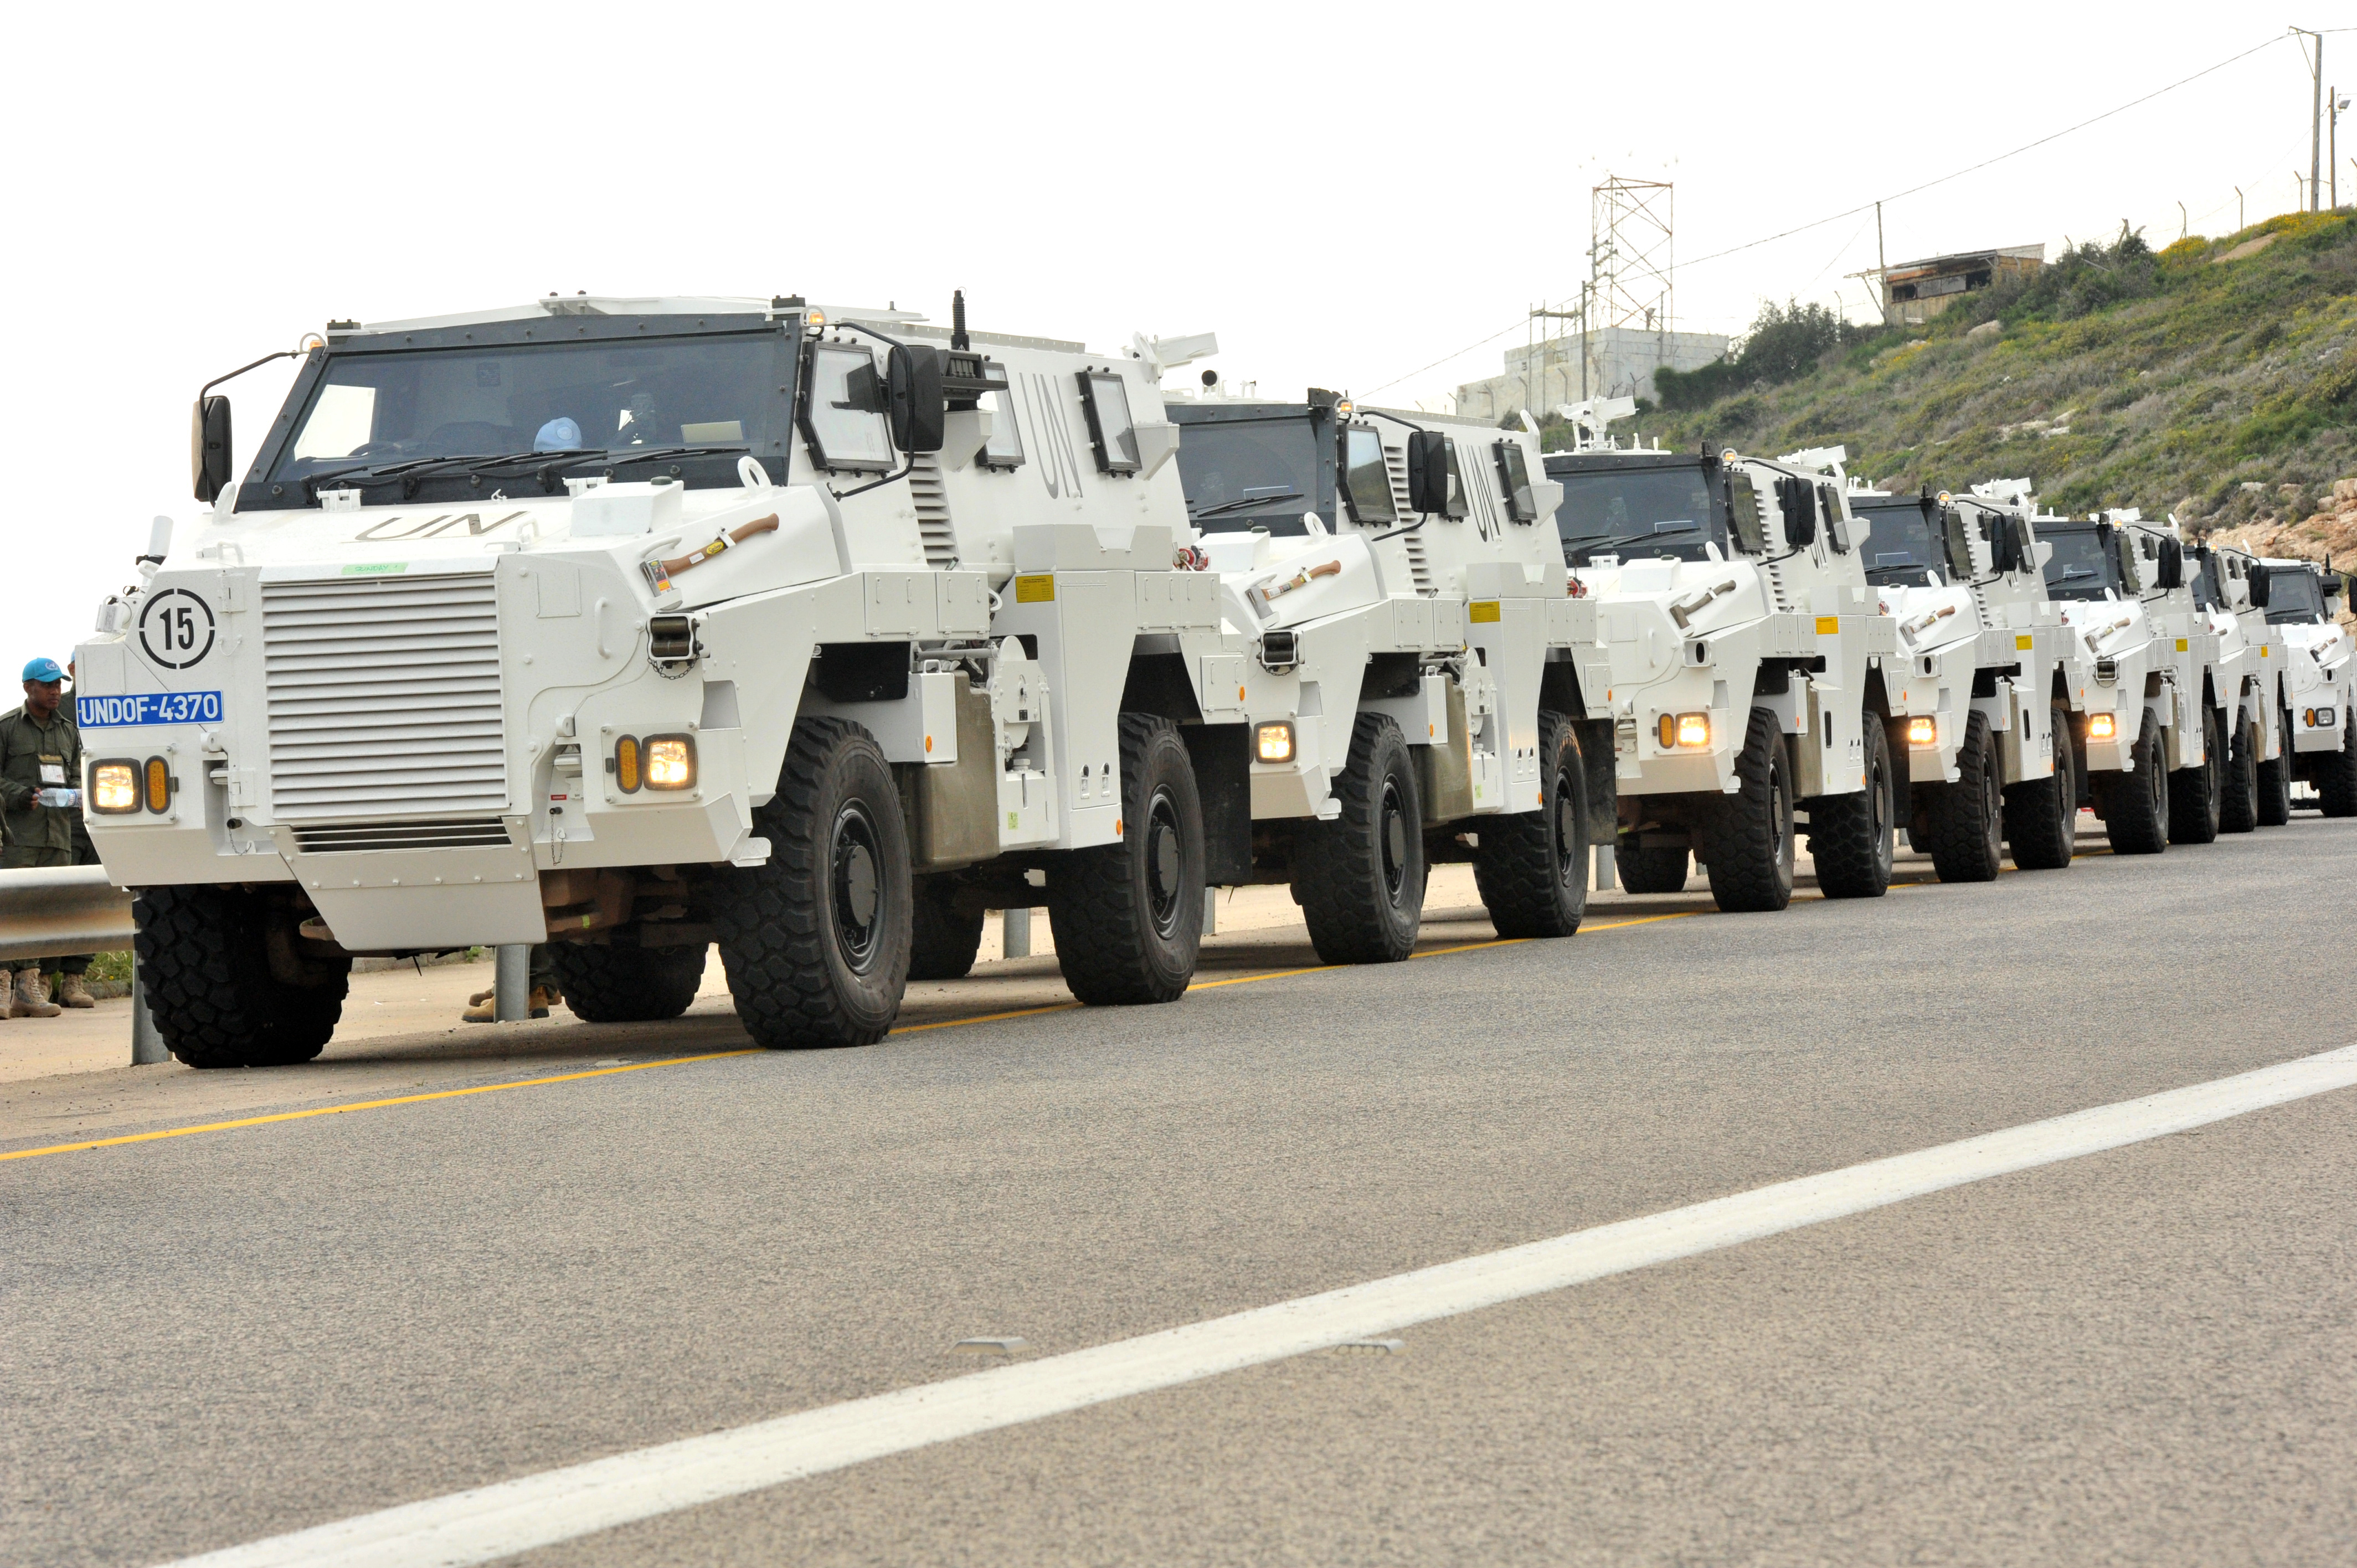 Bushmasters outside Rosh Hanikra border ready to depart for Camp Ziouani in Golan Heights